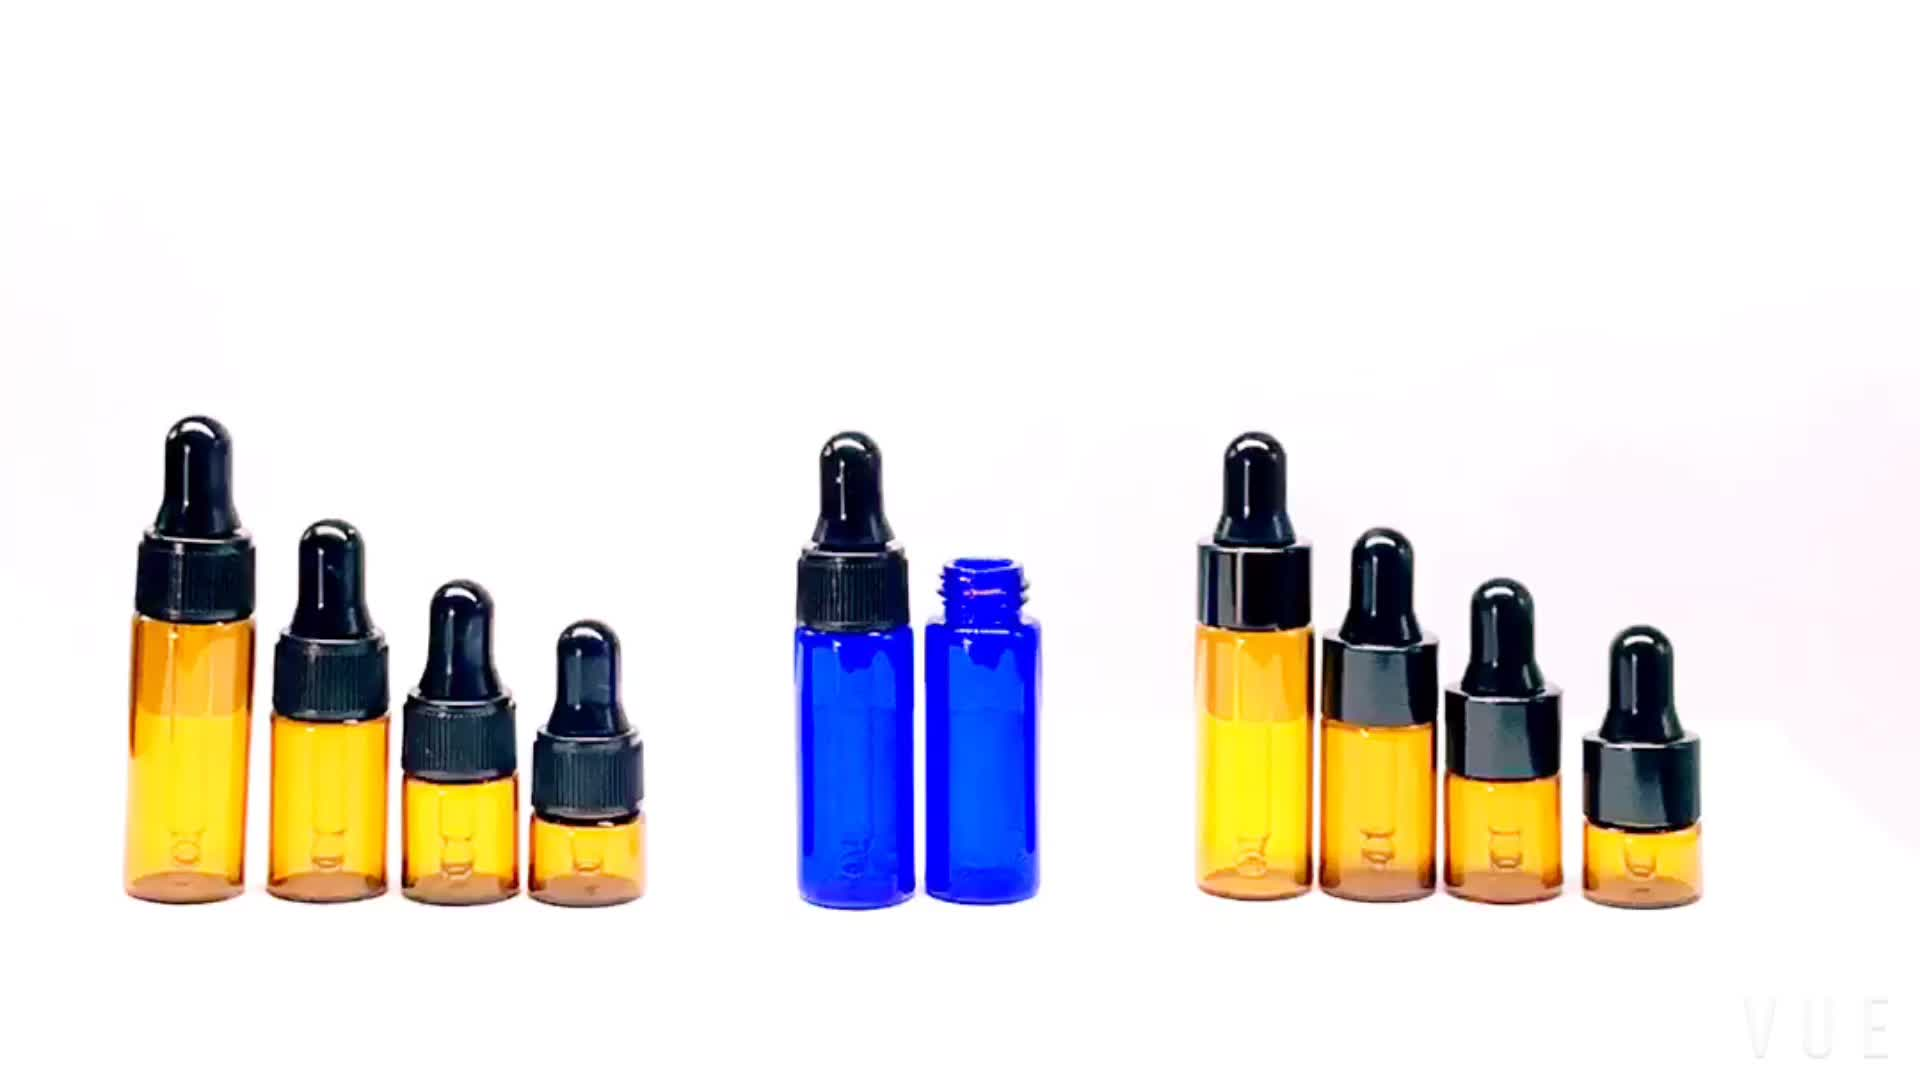 1 ml 2ml 3ml 5ml Tester Amber Glass Aromatherapy Bottle Small Diffuser Essential Oil Dropper Bottle